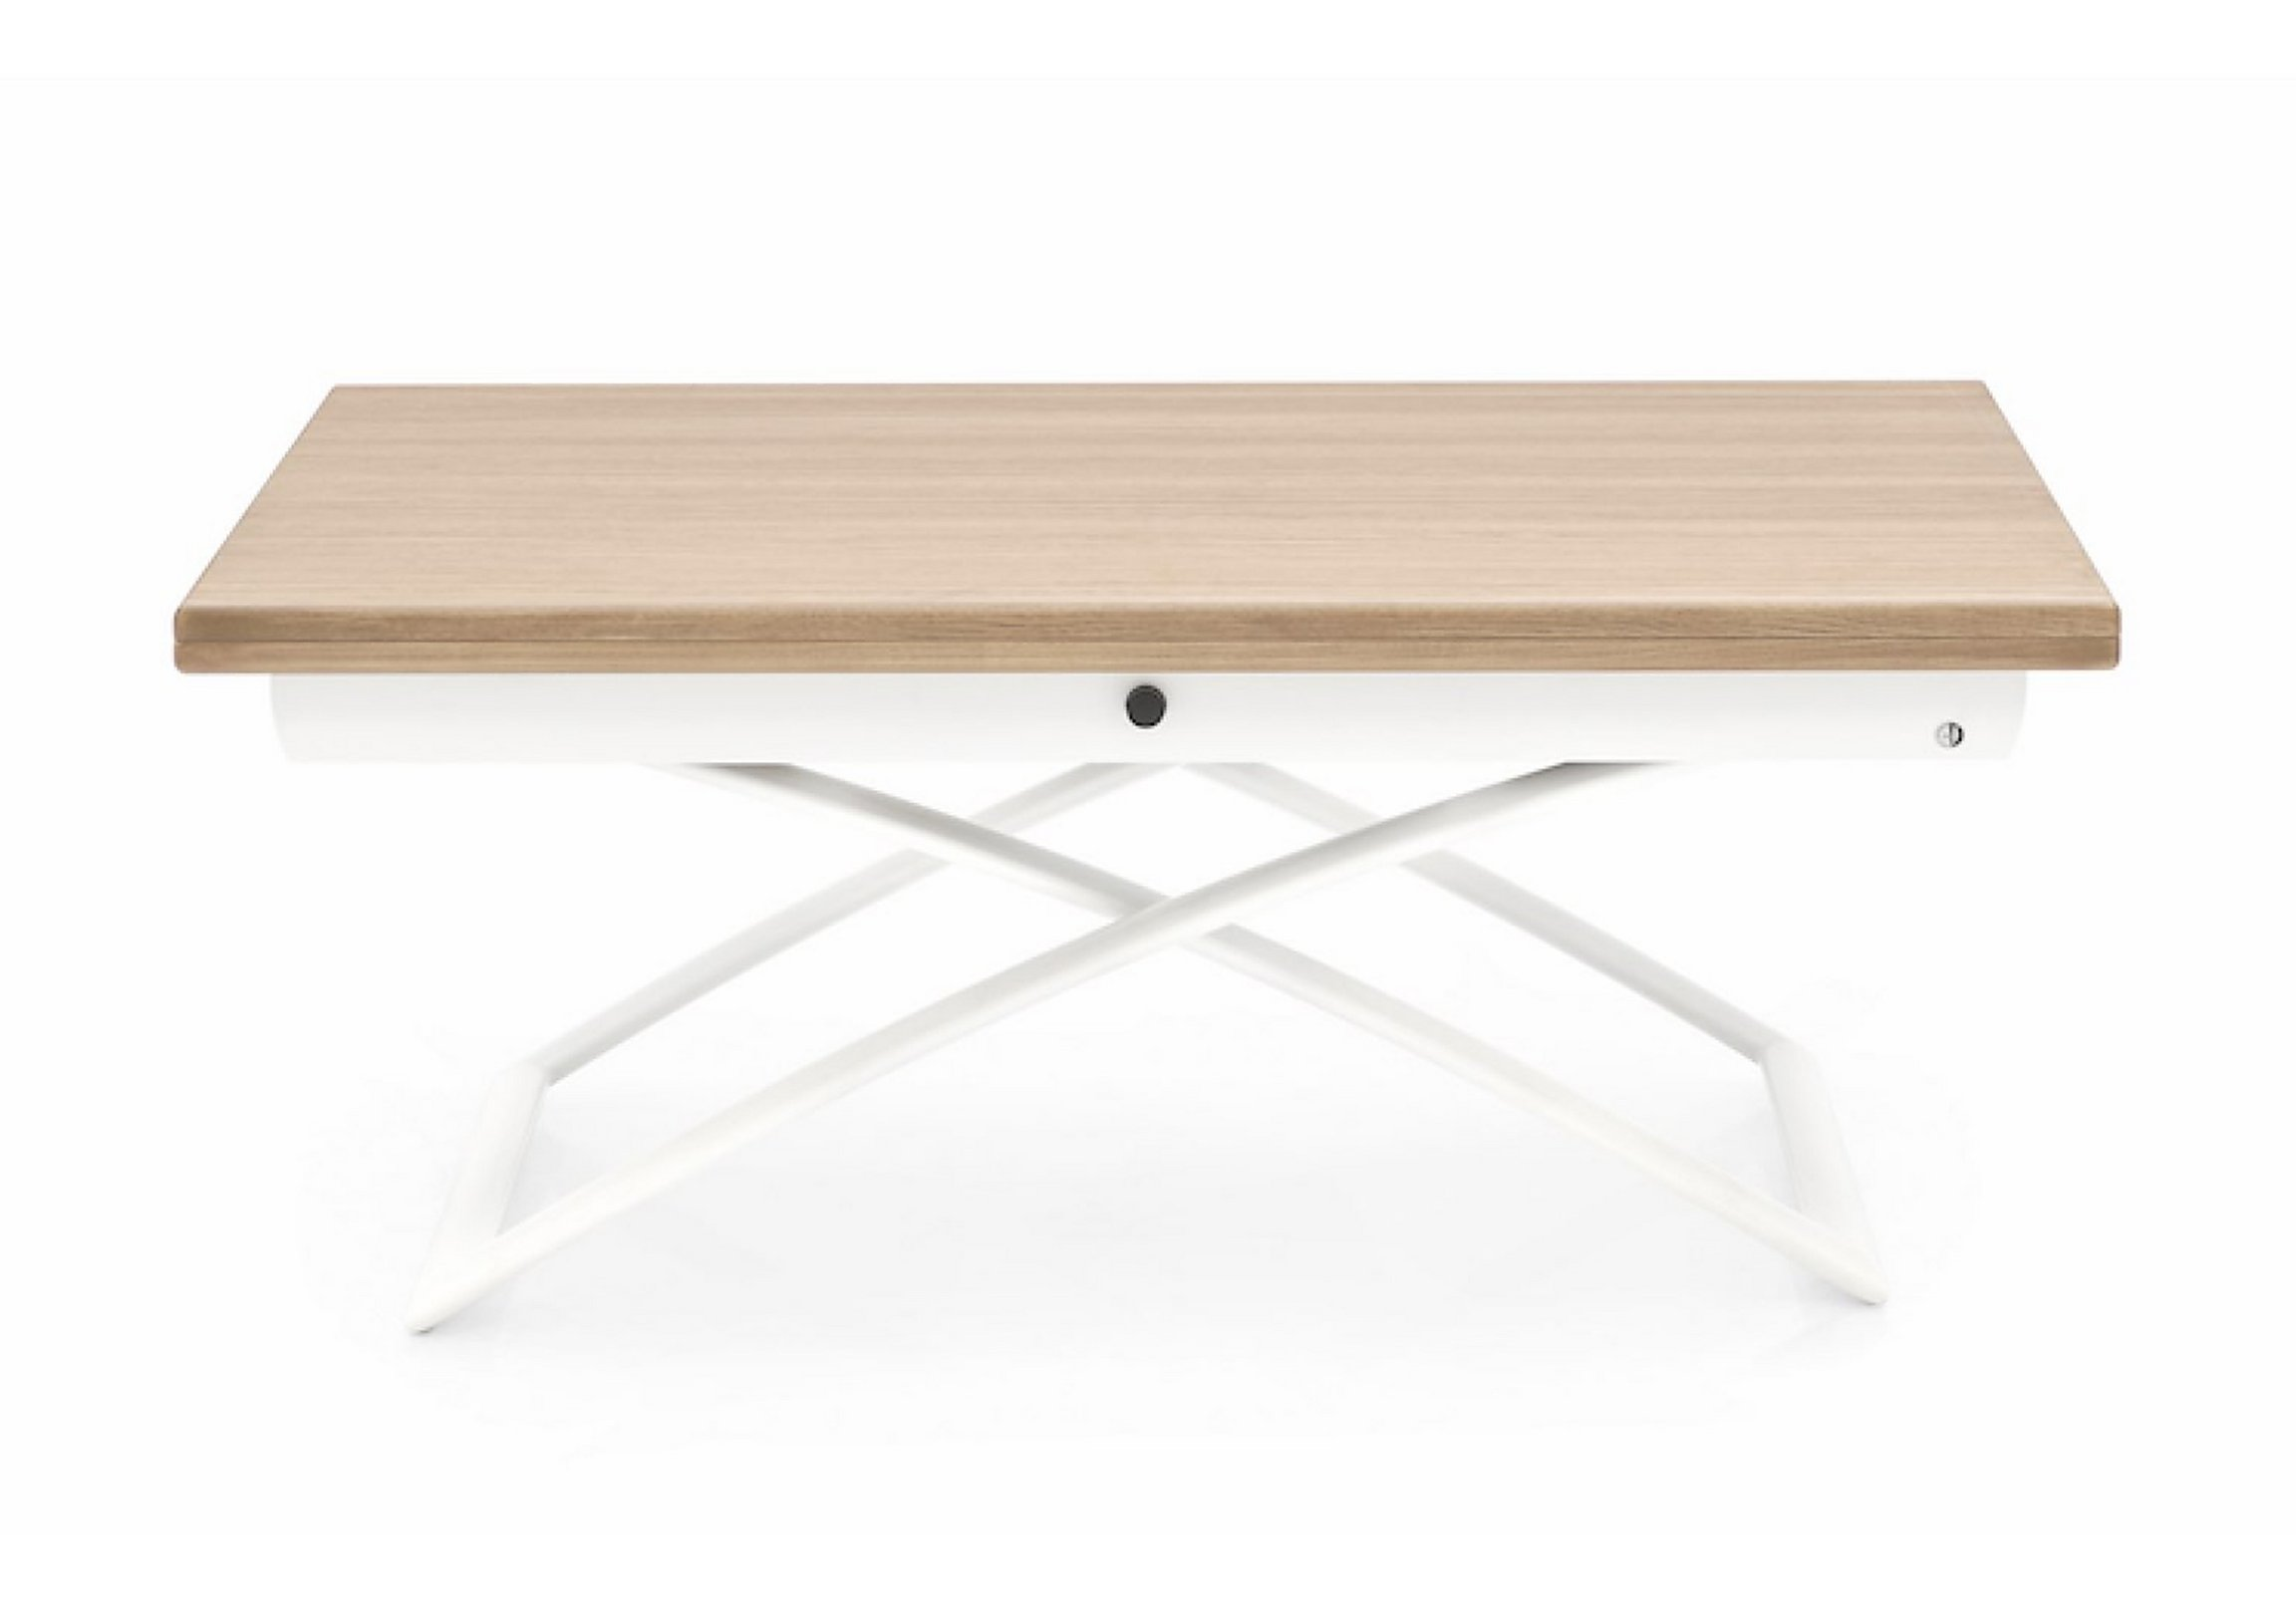 magic j coffee table  calligaris  furniture village - calligaris magic j coffee table